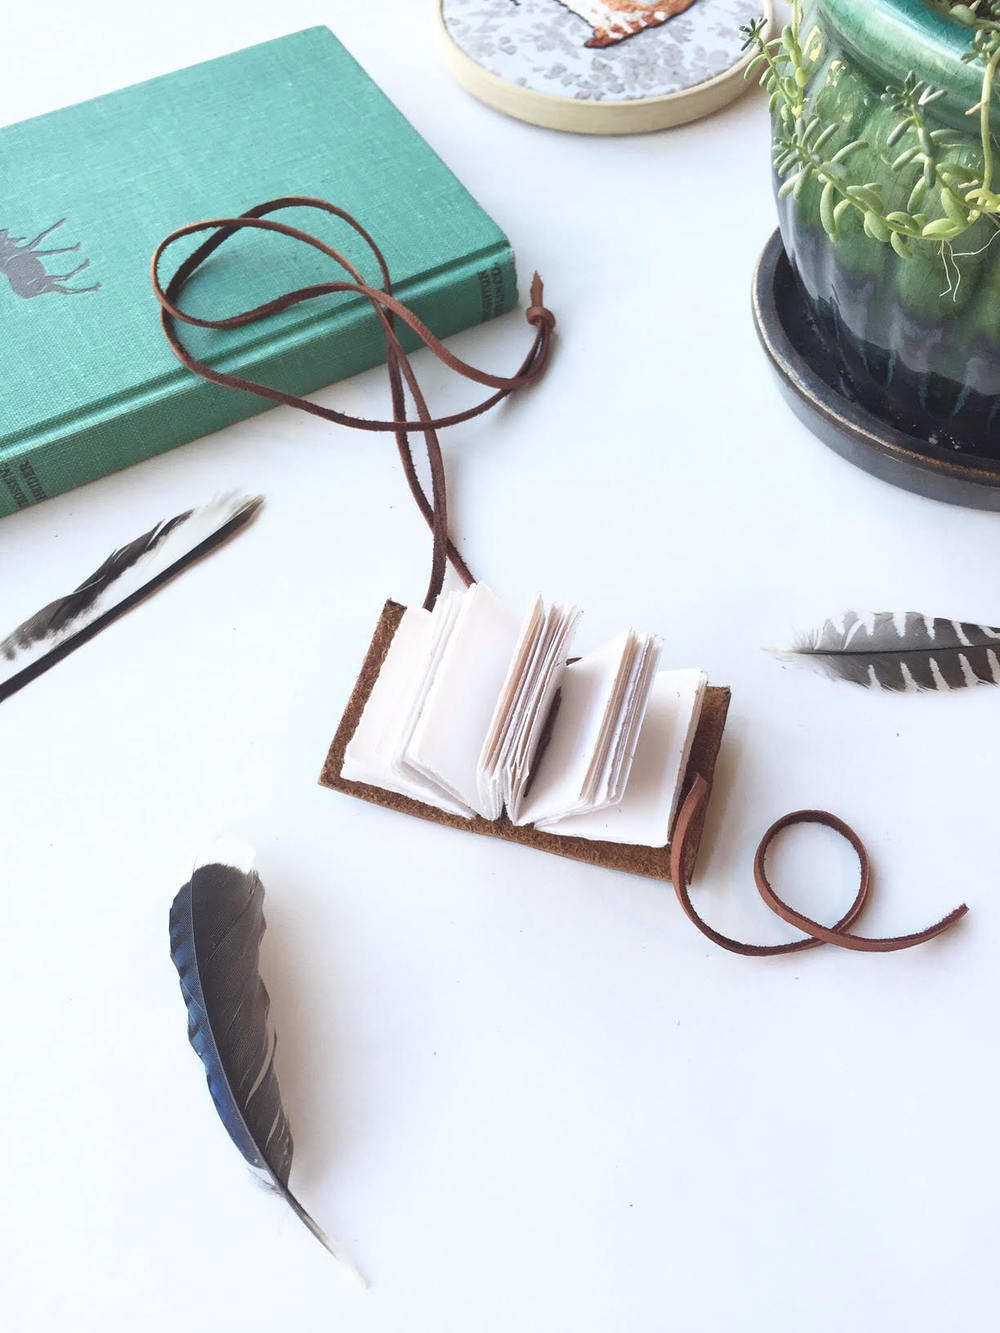 Tutorial: How to Make a Tiny Leather Book Necklace - by the Badon Hill Blog